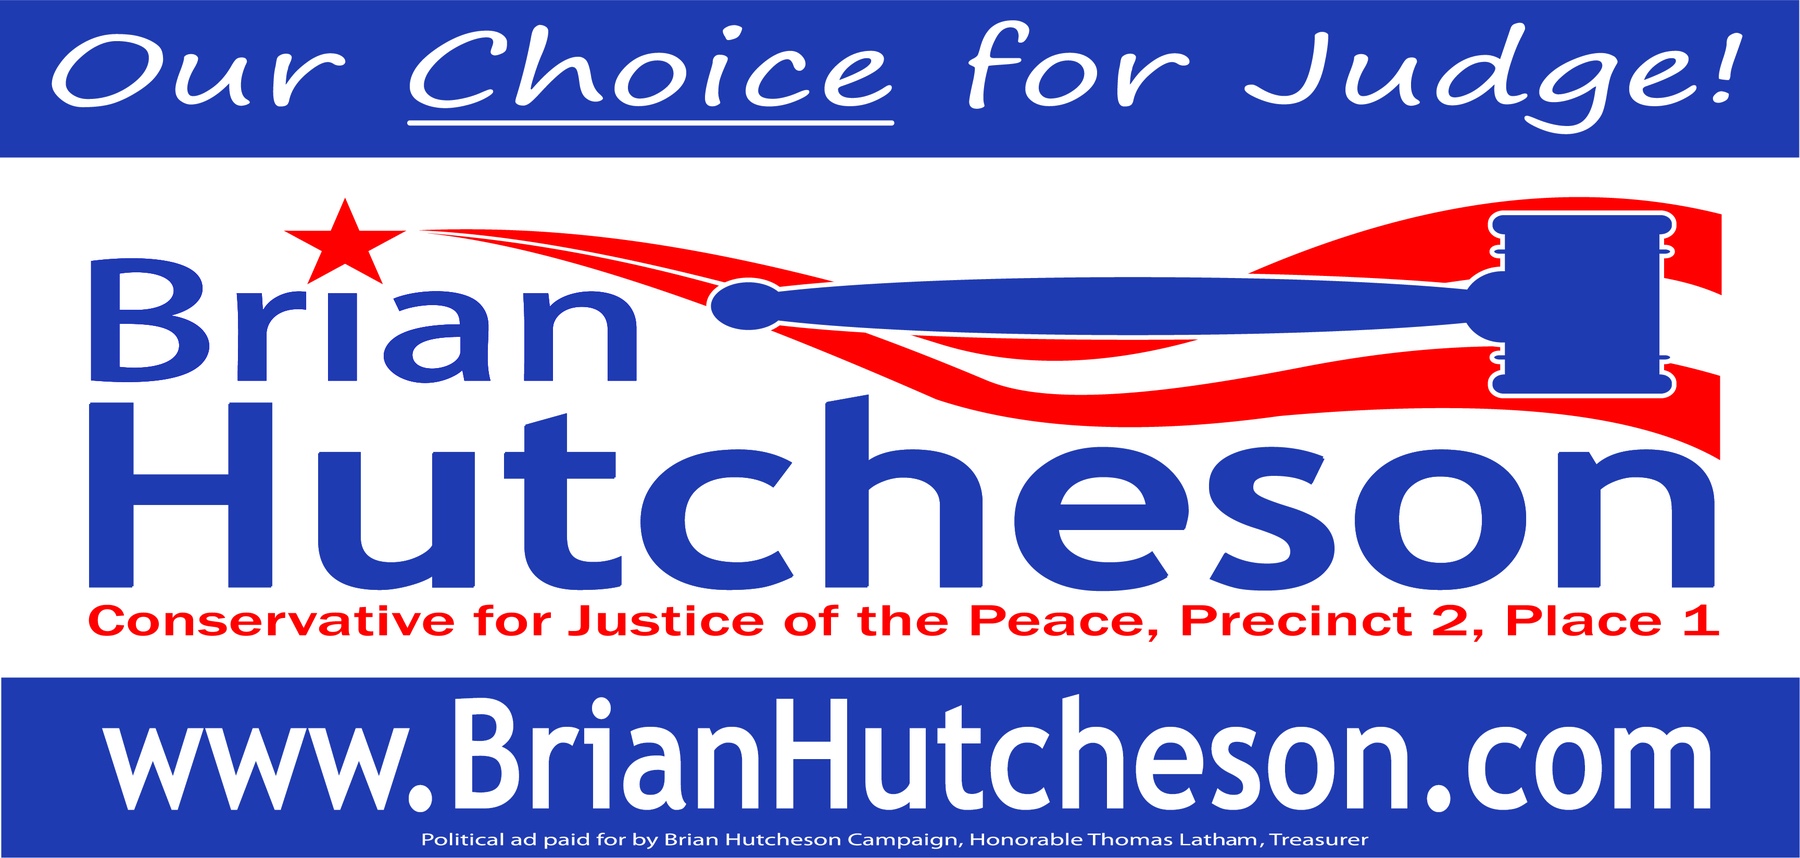 Brian Hutcheson Campaign: Brian Hutcheson for Justice of the Peace